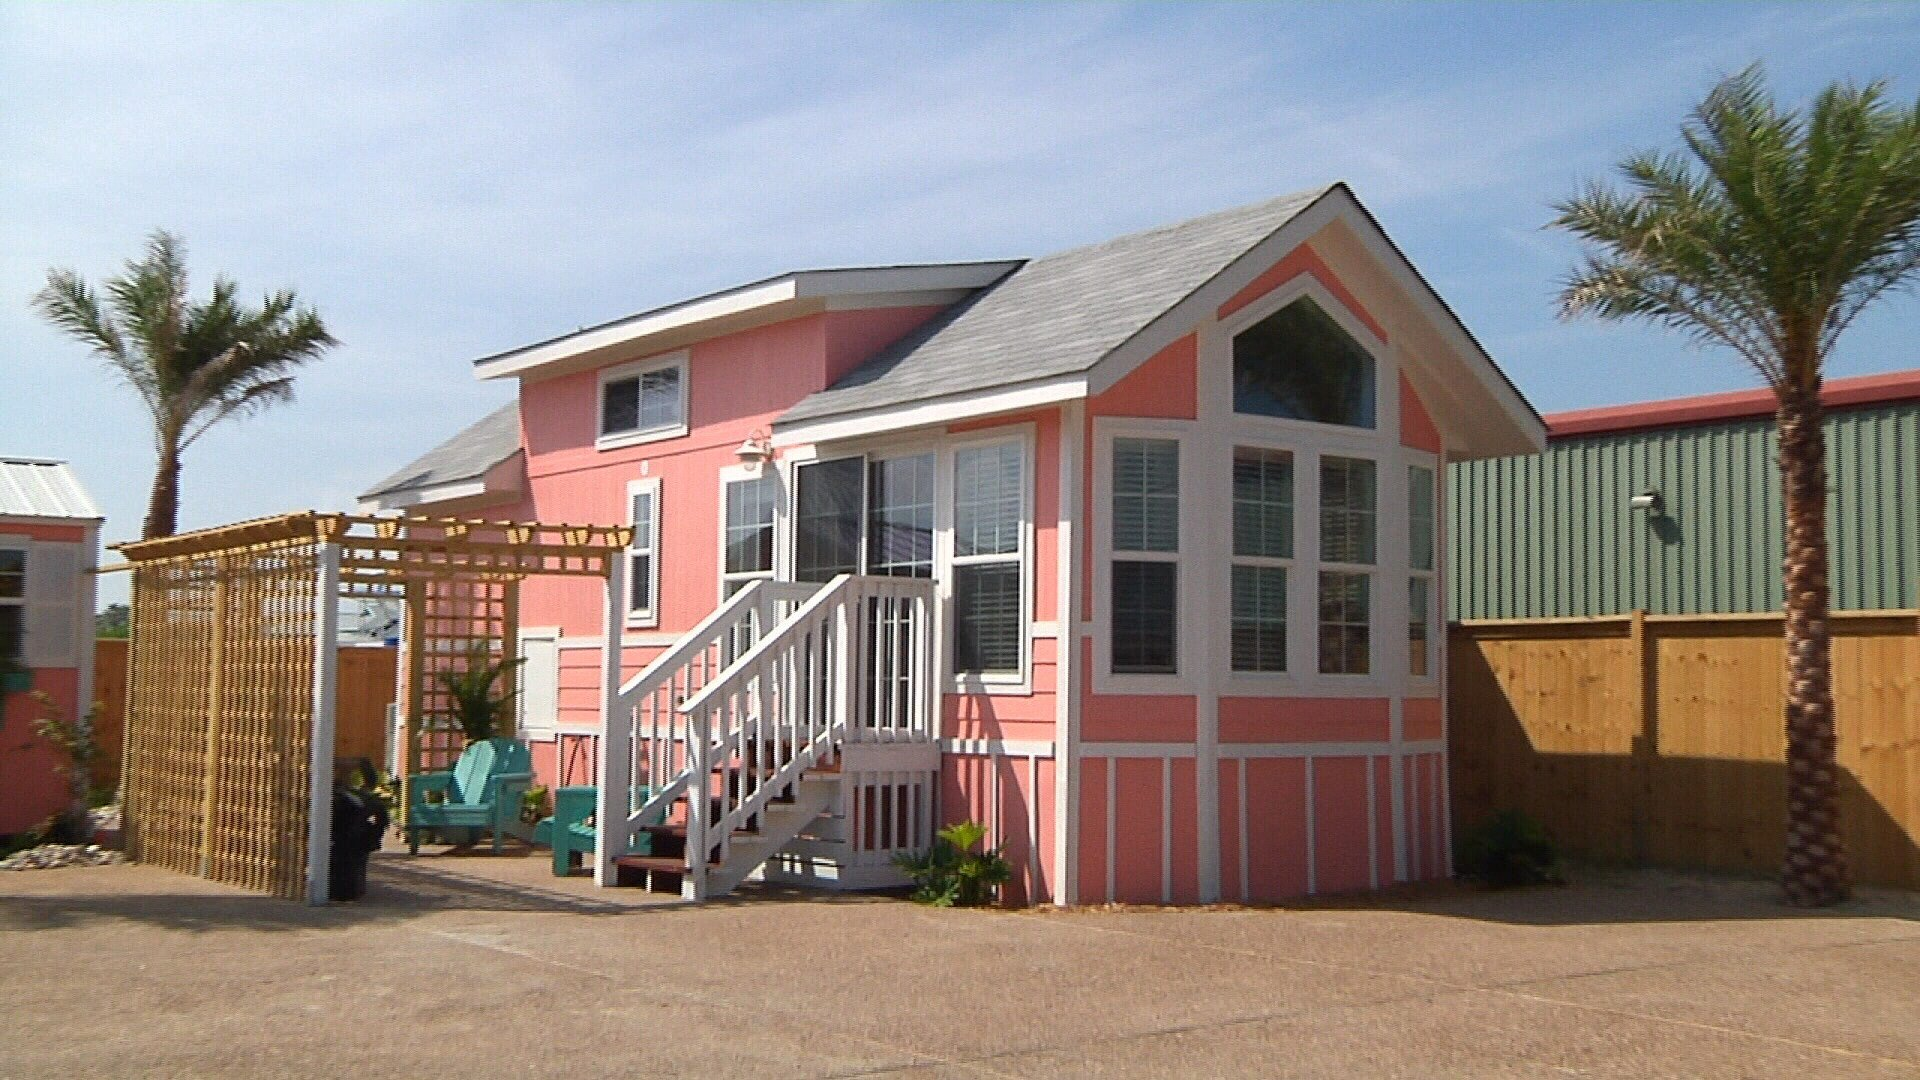 Port Aransas tiny house will appear on HGTV KRISTVcom